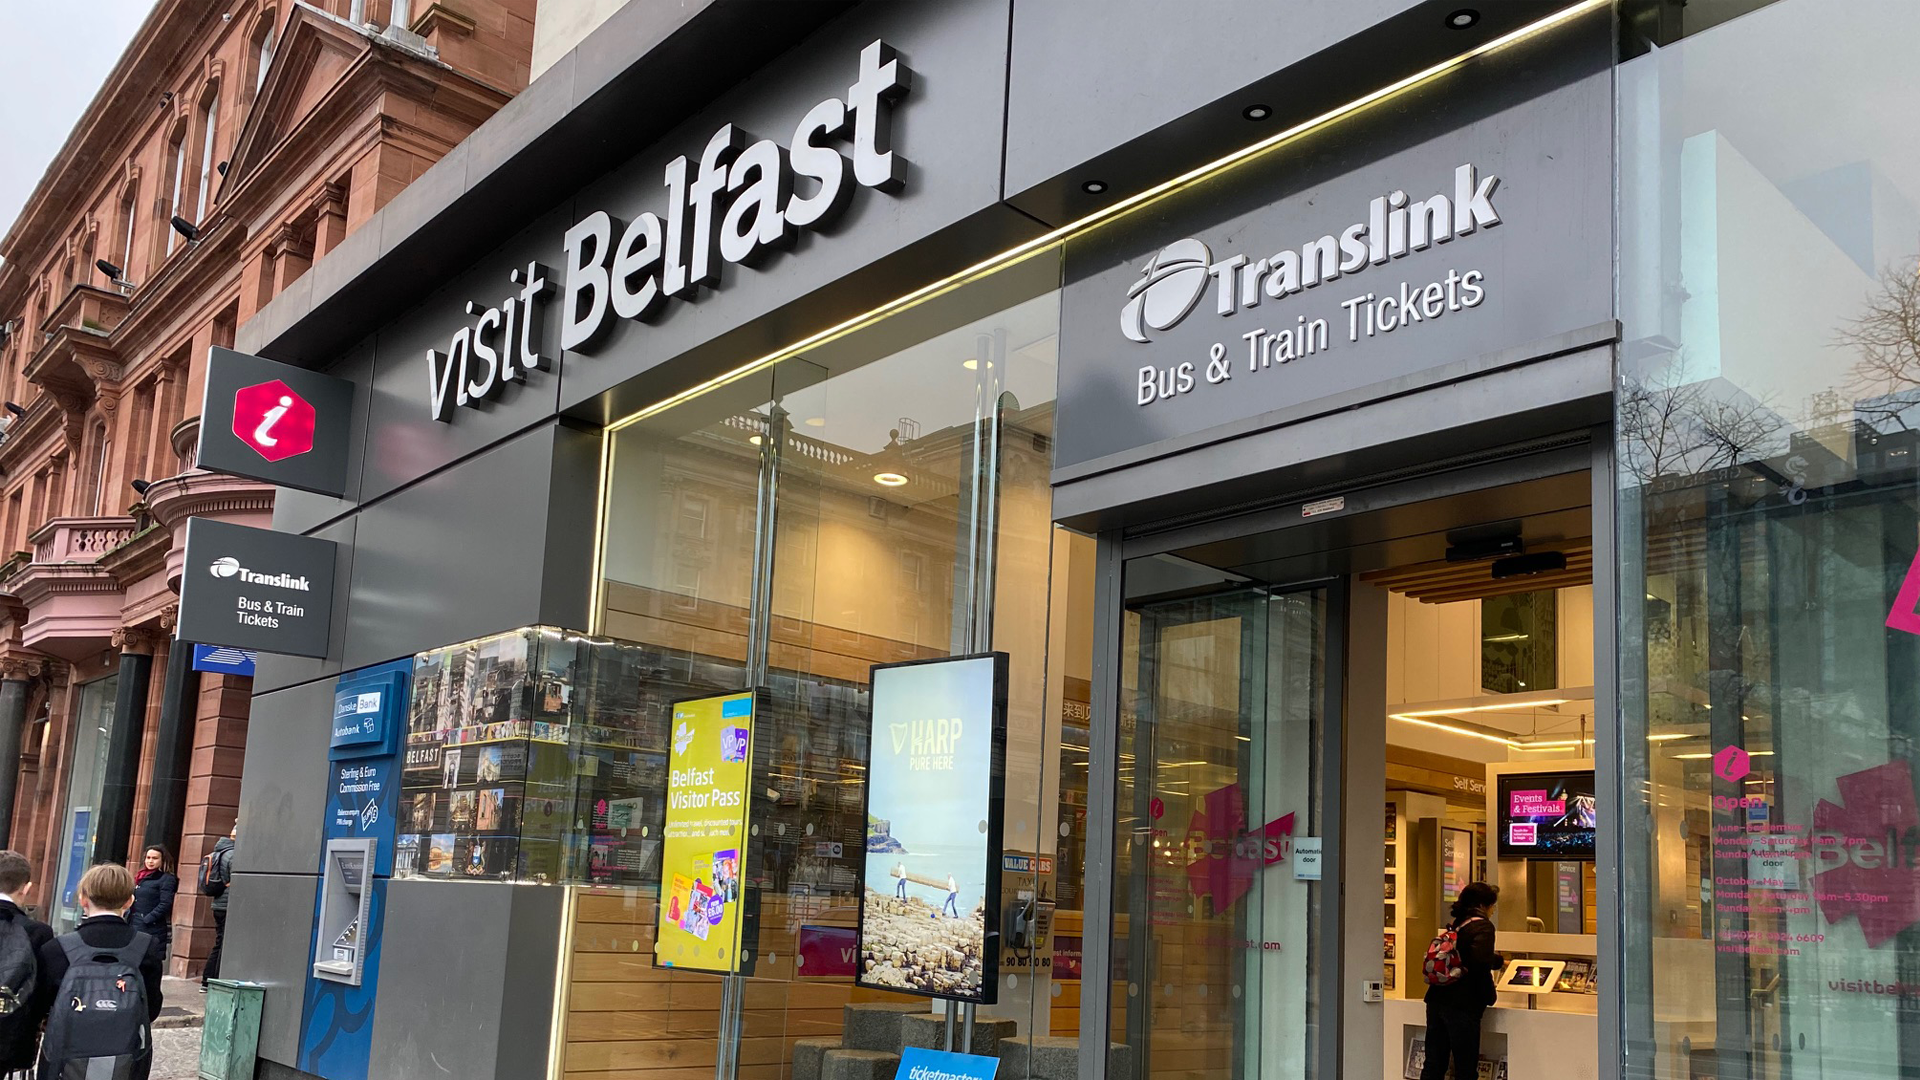 Visit Belfast Welcome Centre 1 with Translink